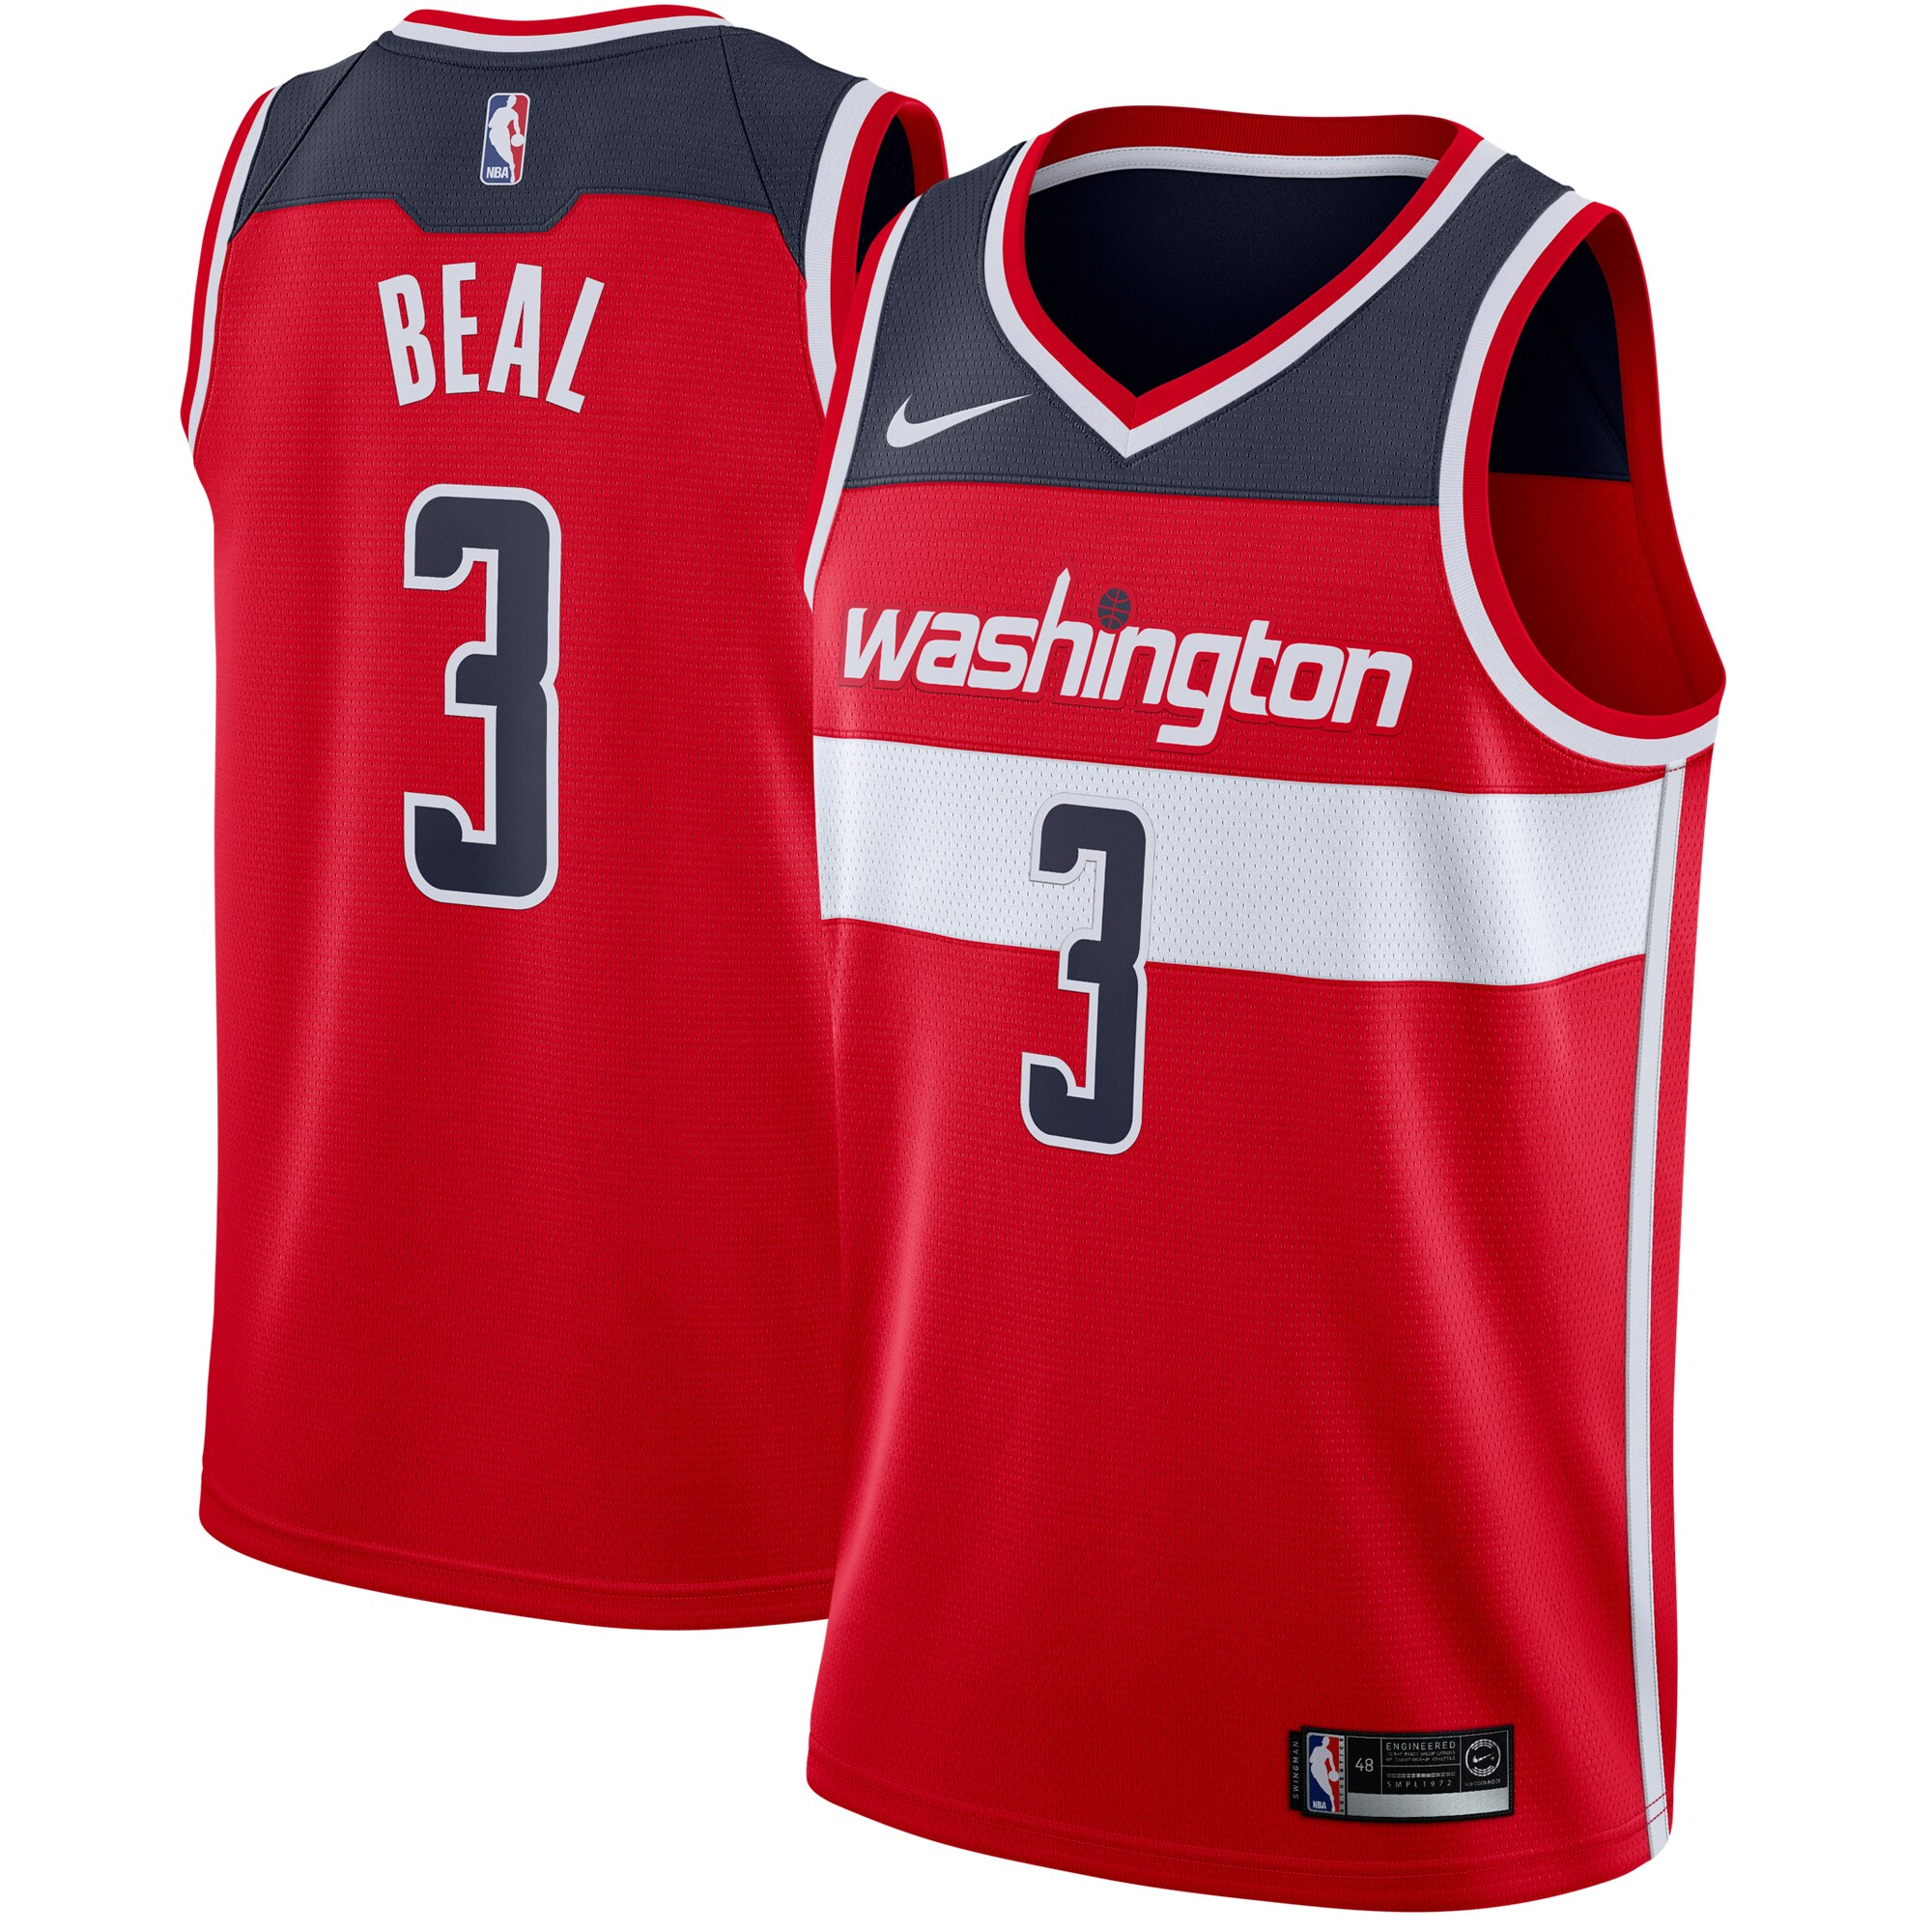 Bradley Beal Washington Wizards Nike Swingman Jersey Red - Icon Edition